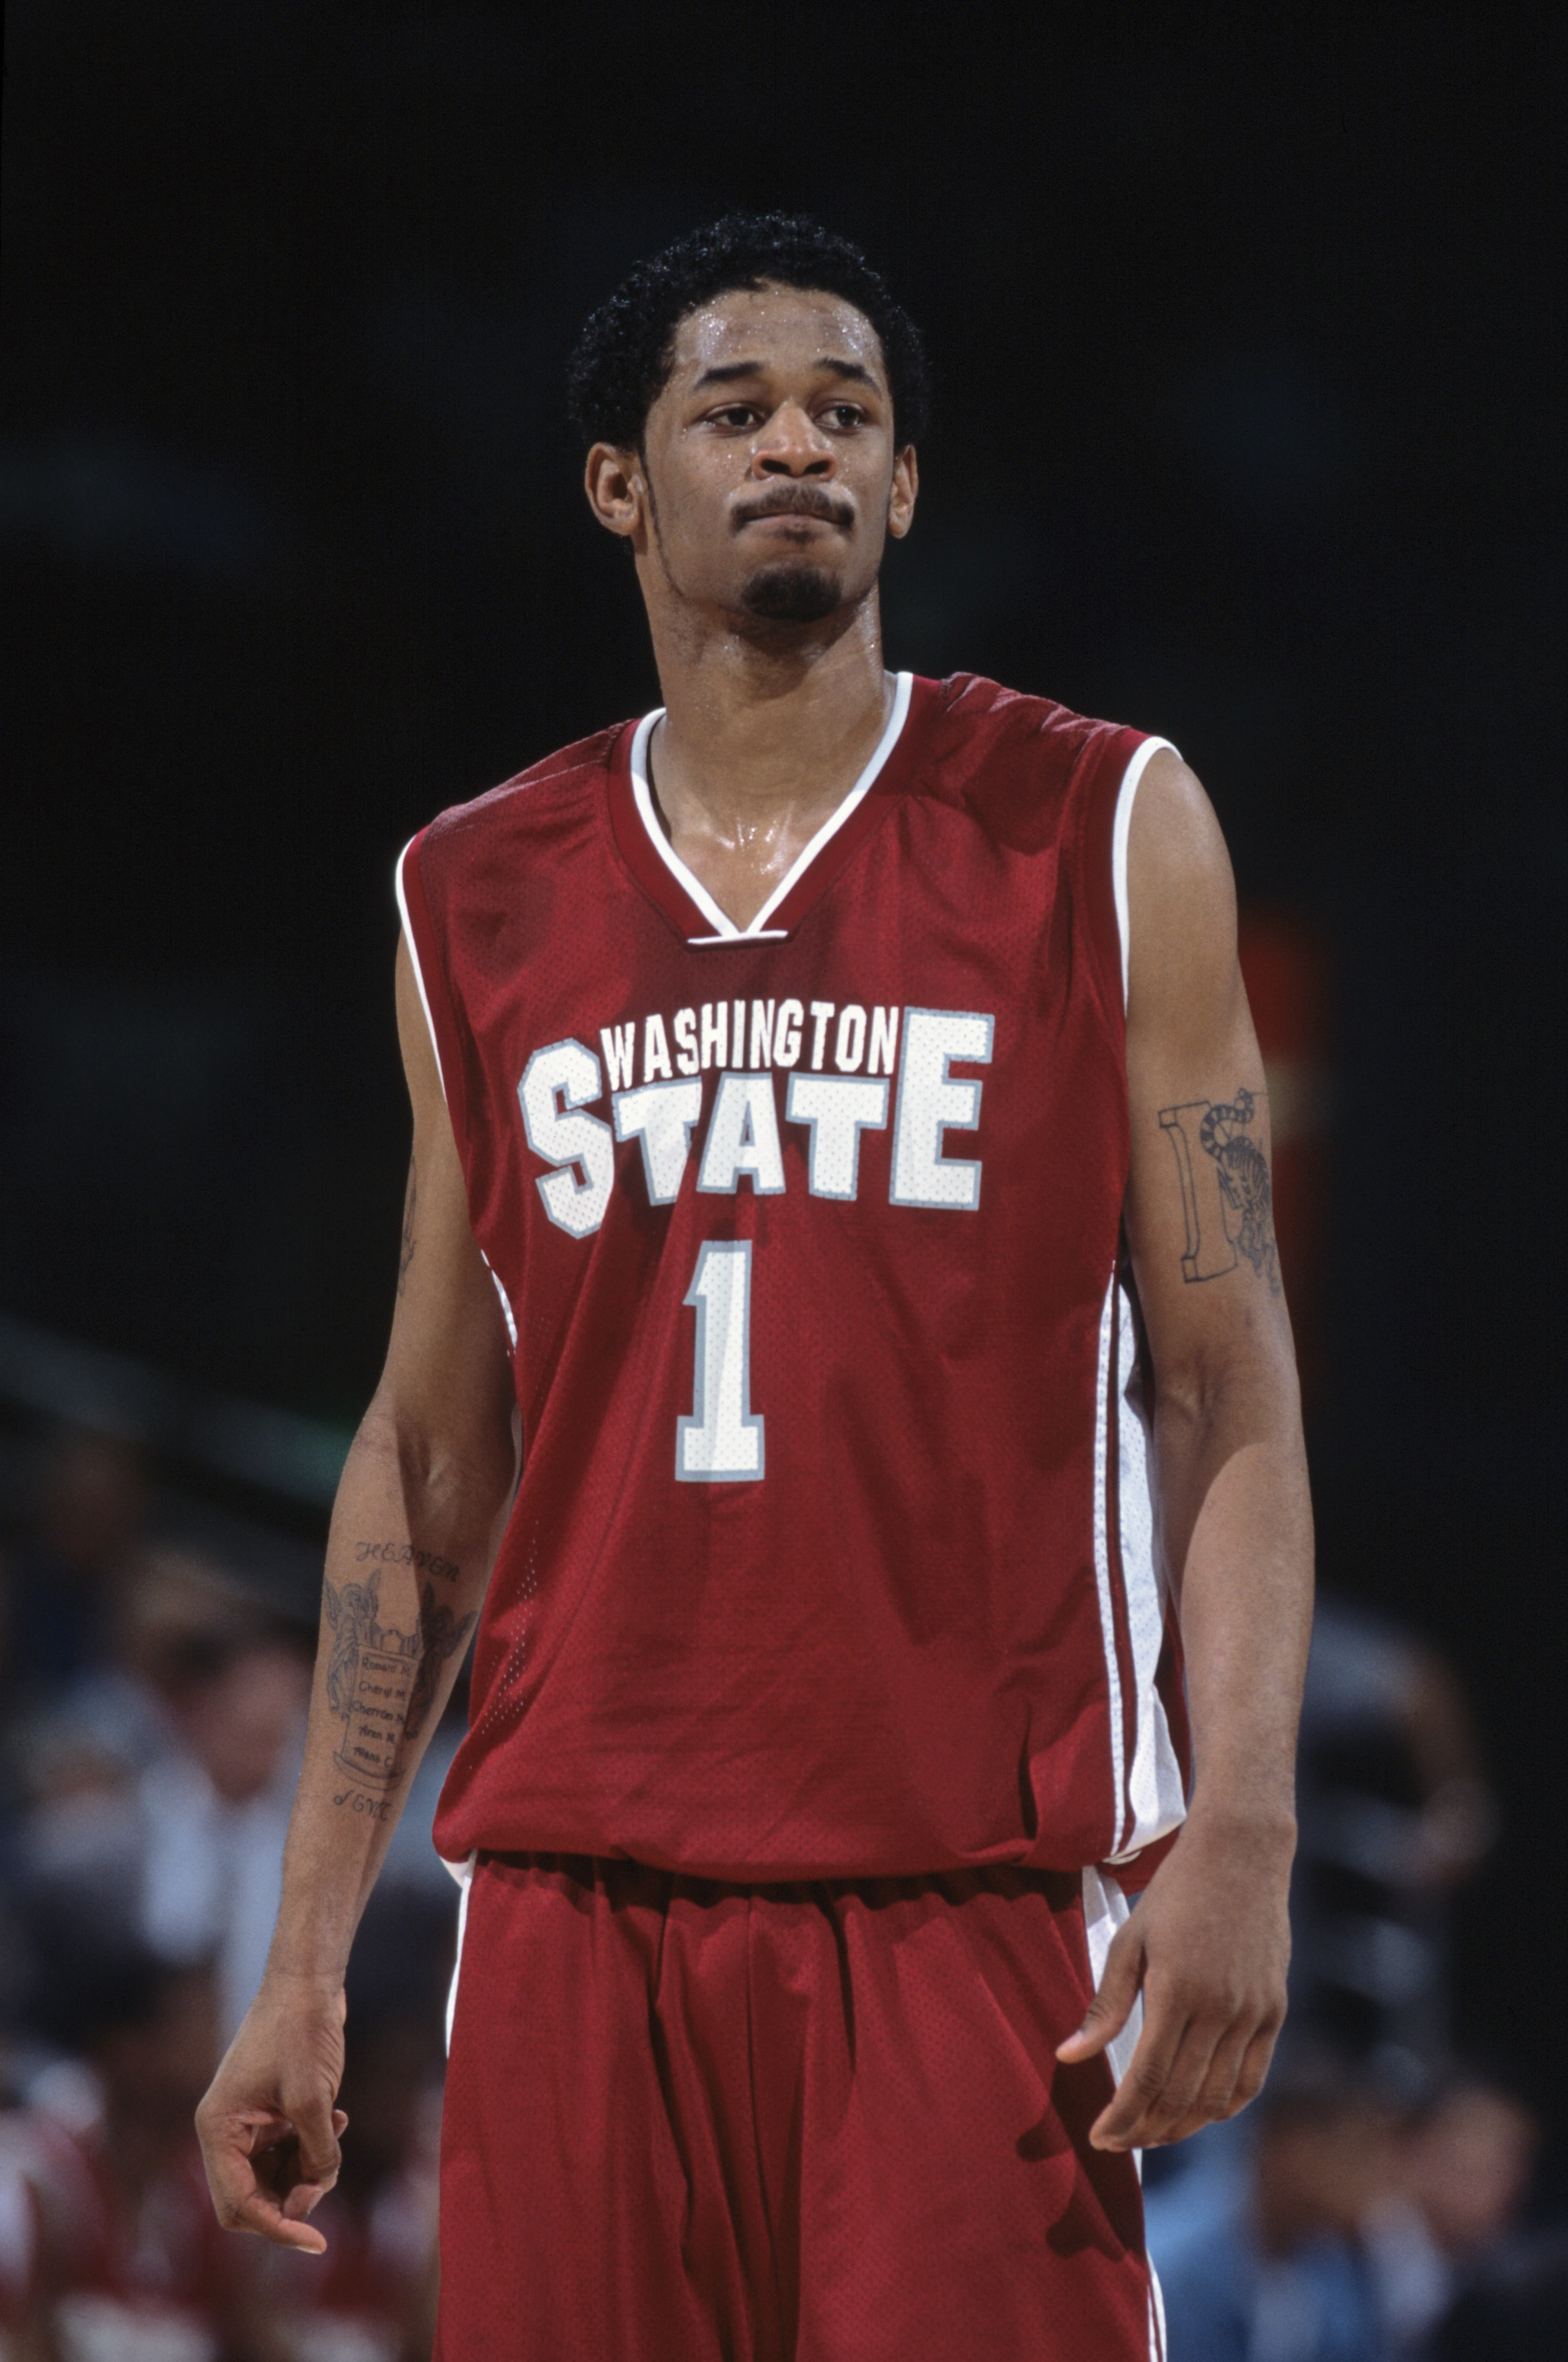 6 Jan 2002:  This is a close up of guard Marcus Moore #1 of the Washington State Cougars. It was taken during the Pac-10 conference game against the UCLA Bruins at the Pauley Pavilion in Los Angeles, California.  The Bruins defeated the Cougars 81-69.  Ma